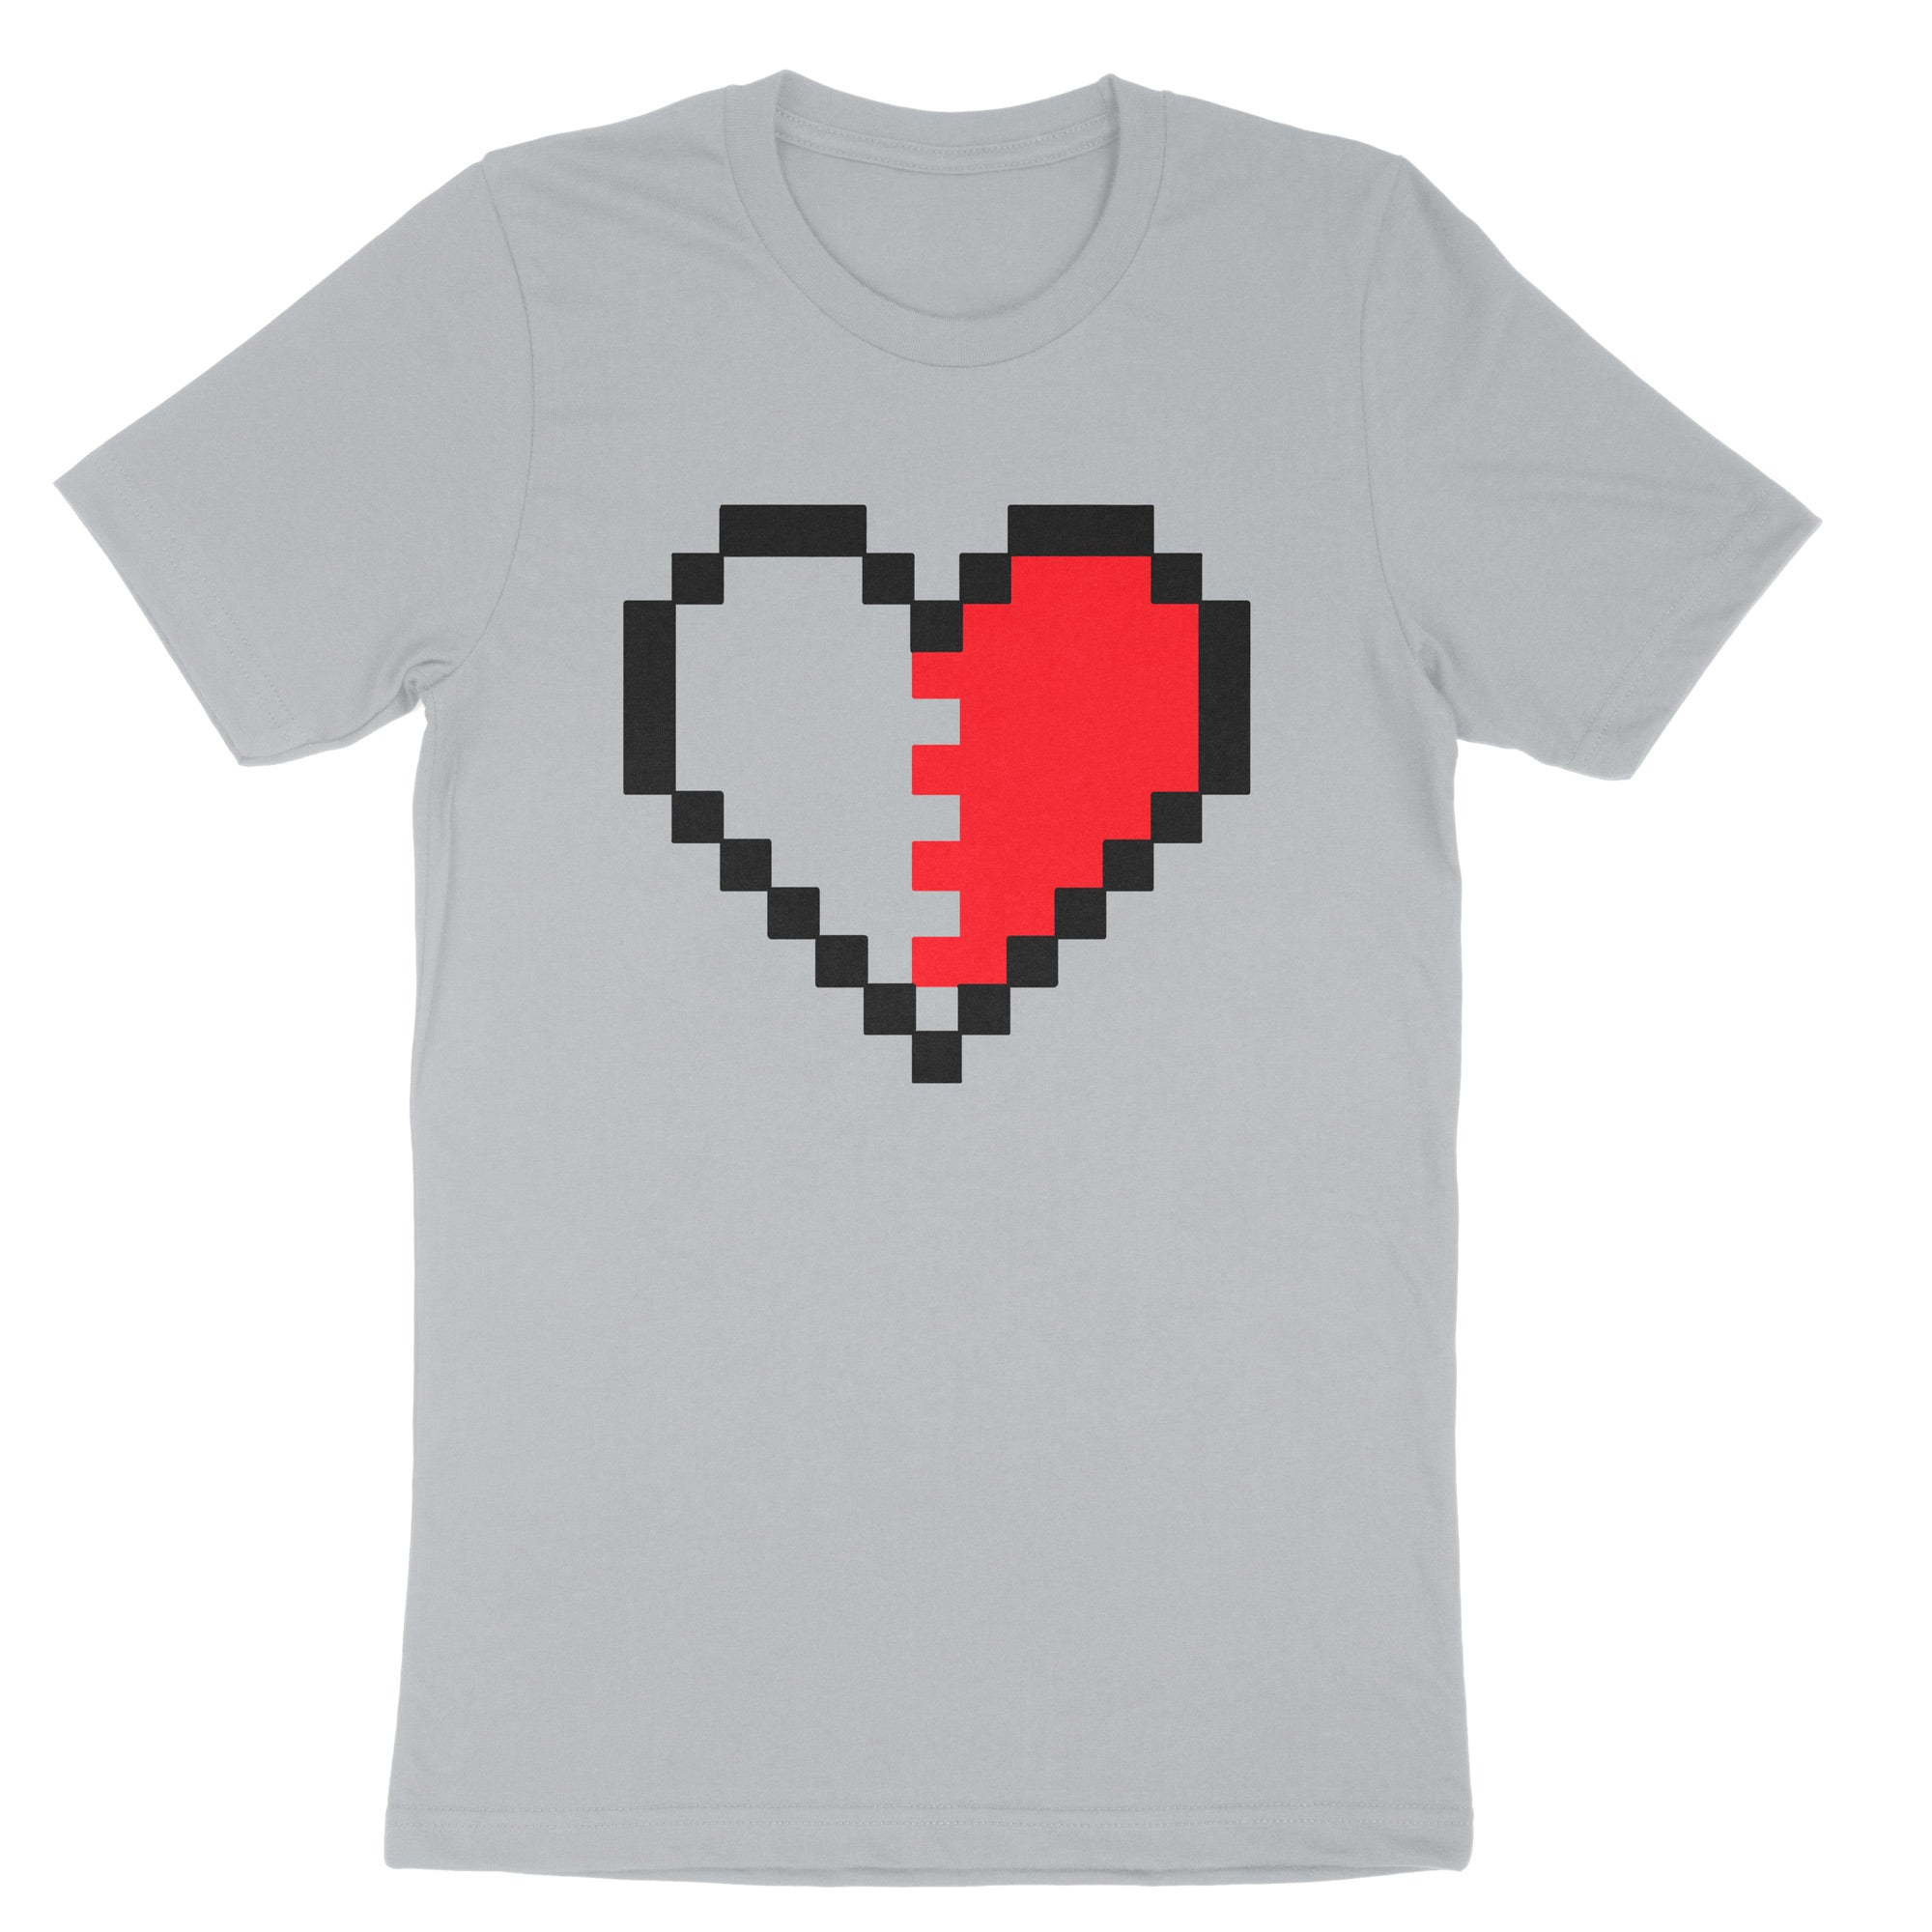 Pixel Heart Couples Shirt-T-Shirts-Shirtasaurus-Premium-XS-Silver Right Heart-Shirtasaurus